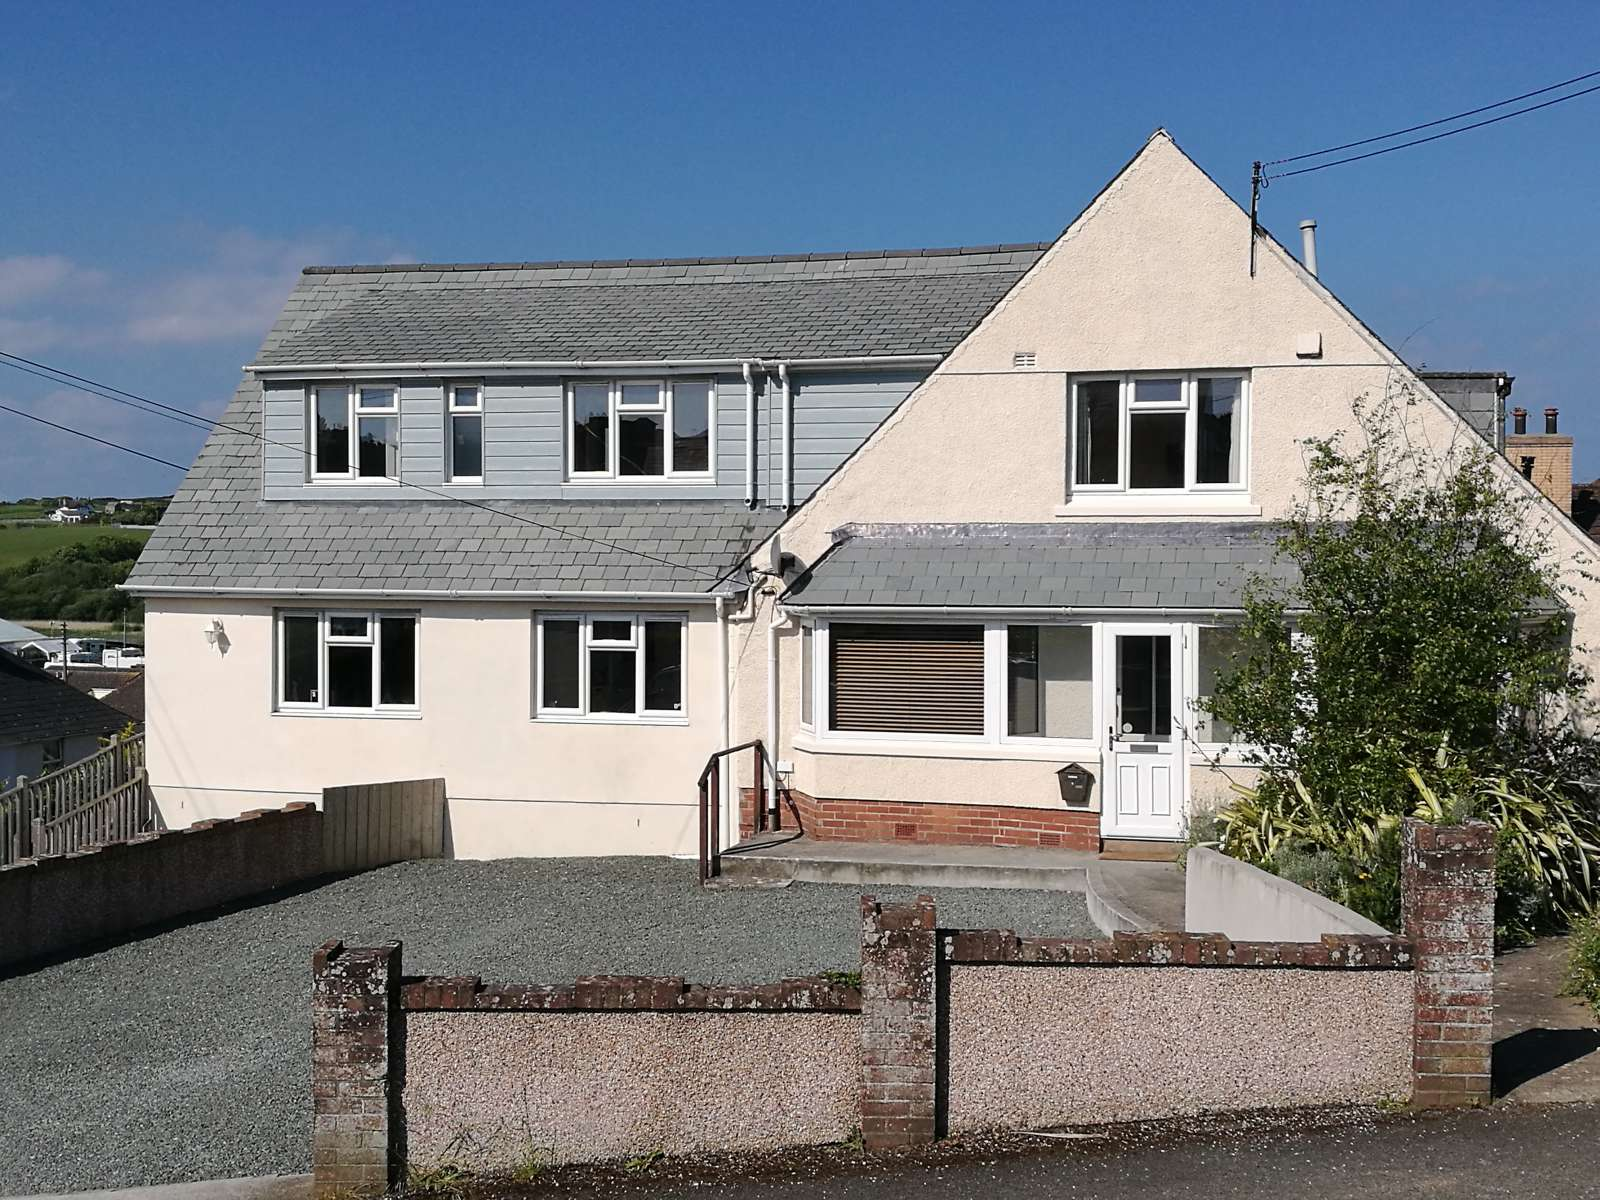 House In Bude Large House With Private Hot Tub Sauna Spa Room Playroom And Secure Gardens Close To Beaches And Town